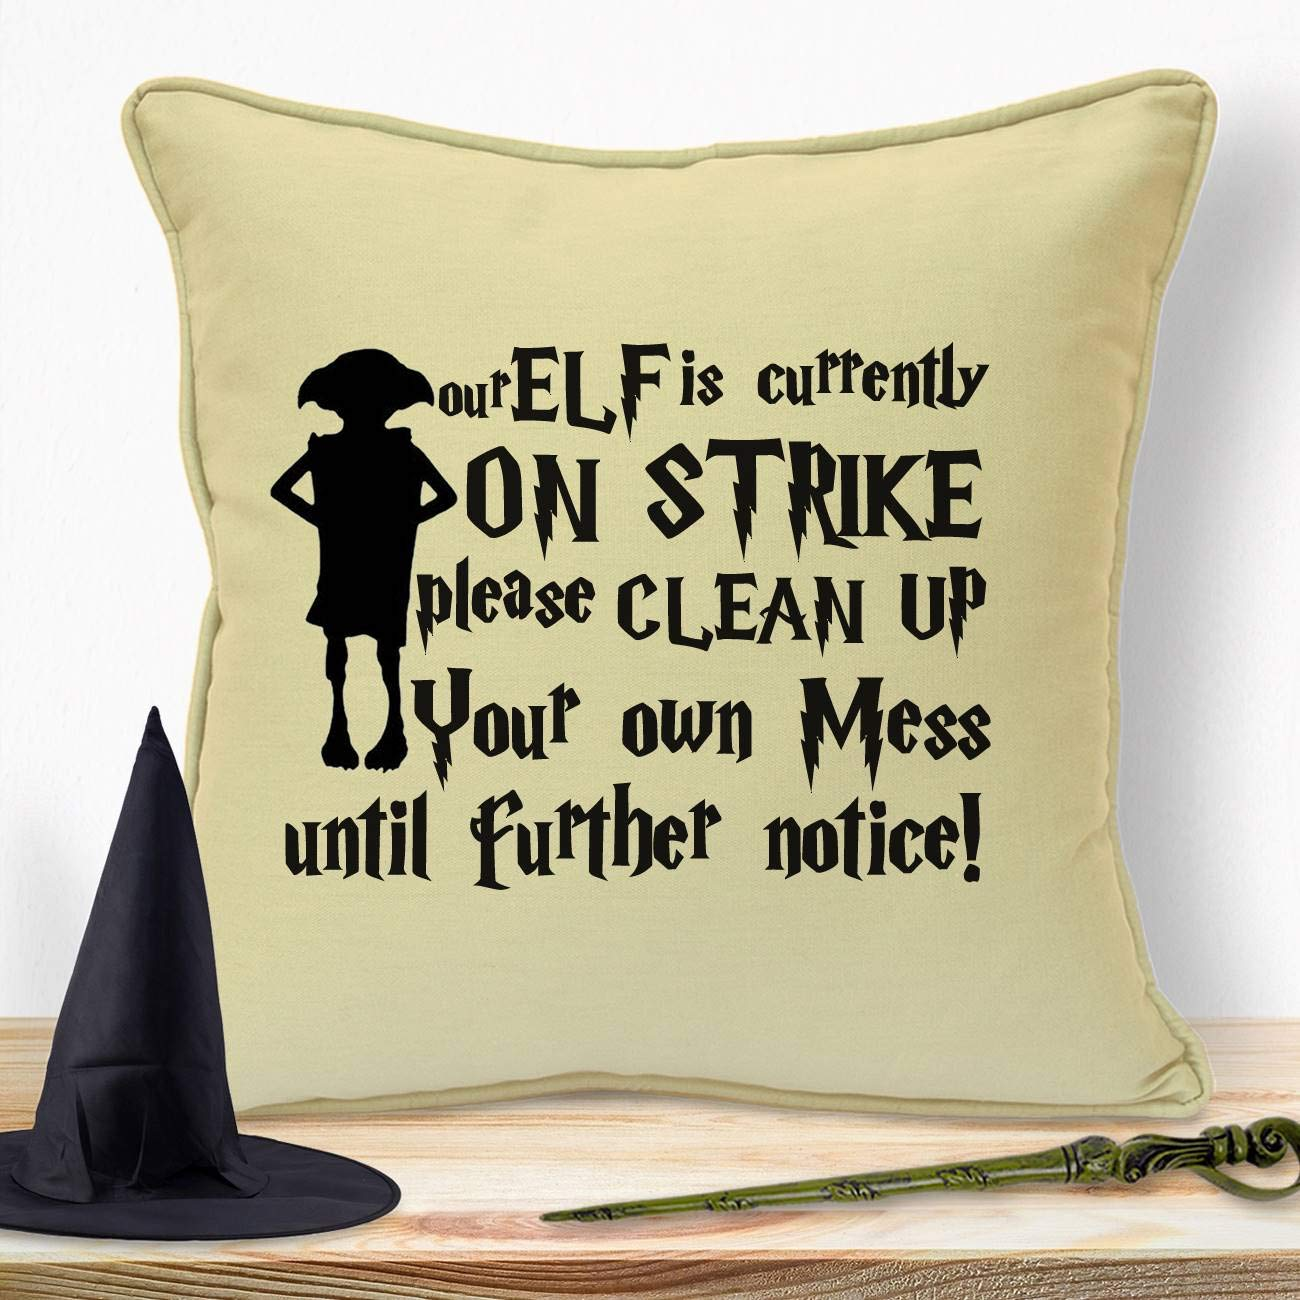 Harry Potter Gifts For Her Girls Kids Boys Women Girlfriend Children Adults Christmas Birthday Xmas Anniversary Handmade Housewarming Quotes Unique Room Decorations Ideas Elf On Strike Cushion